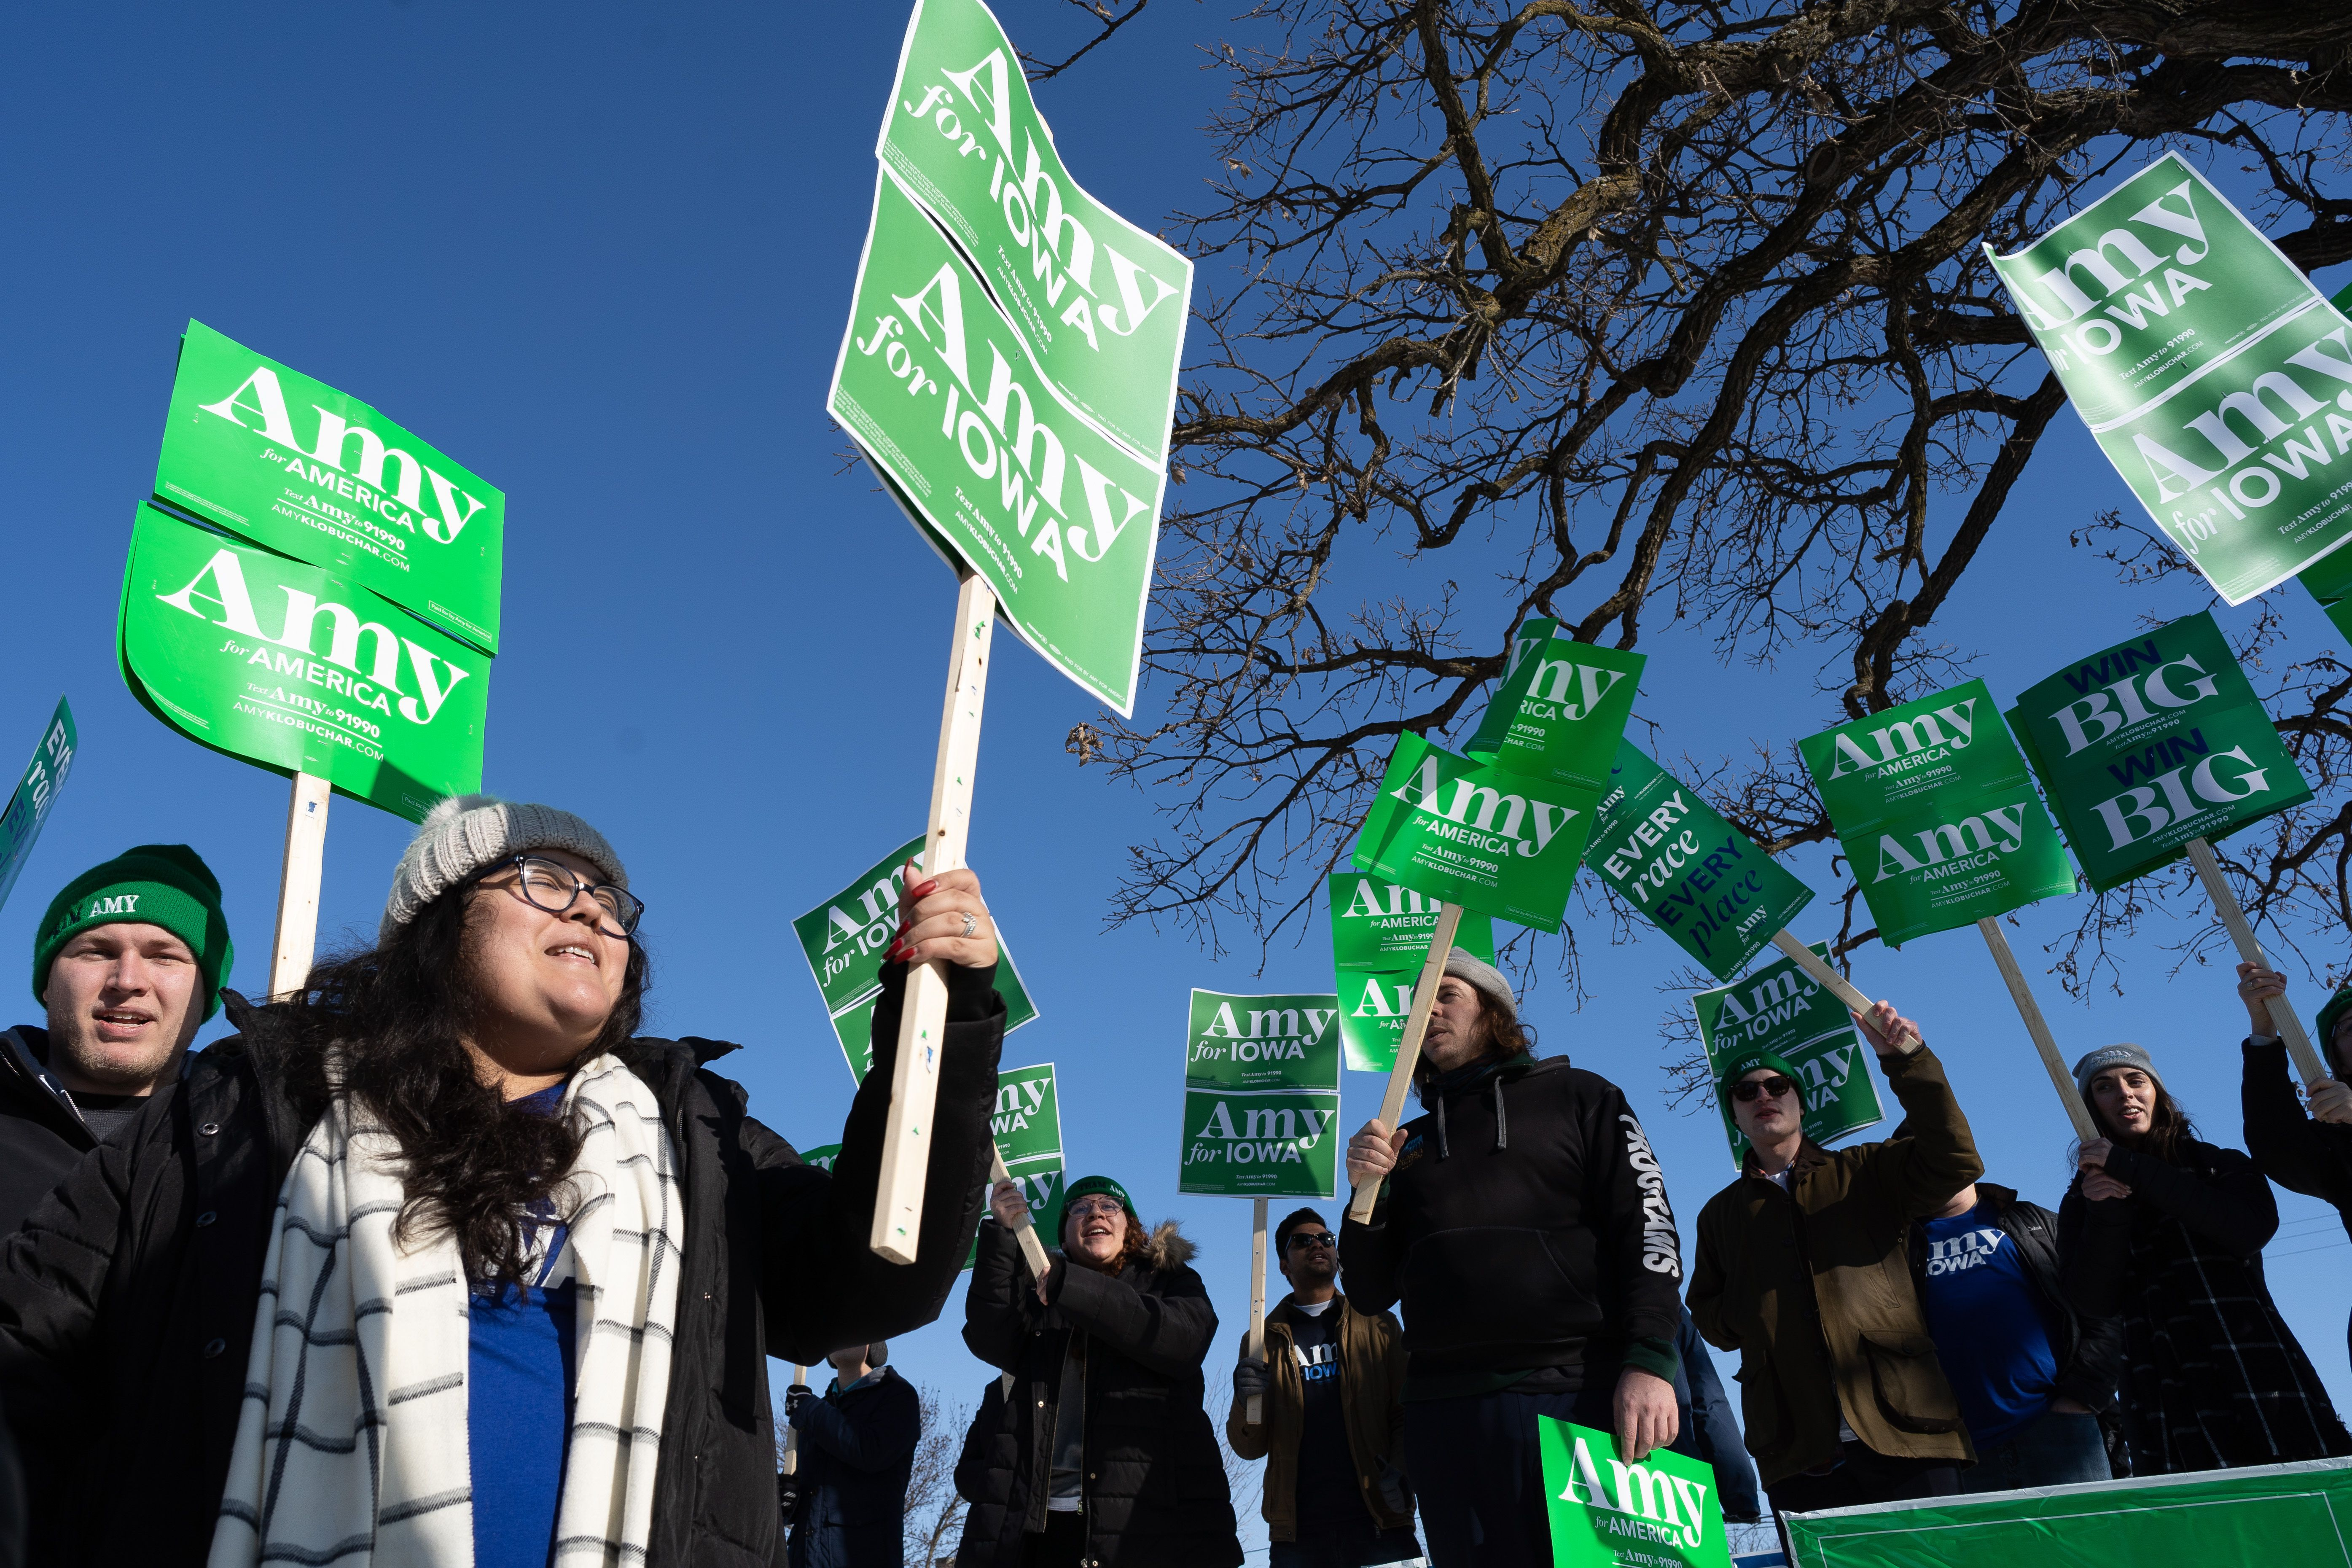 Supporters of presidential candidate Amy Kobluchar demonstrate at the Drake University campus in Des Moines, Iowa, on Jan. 14, 2020.